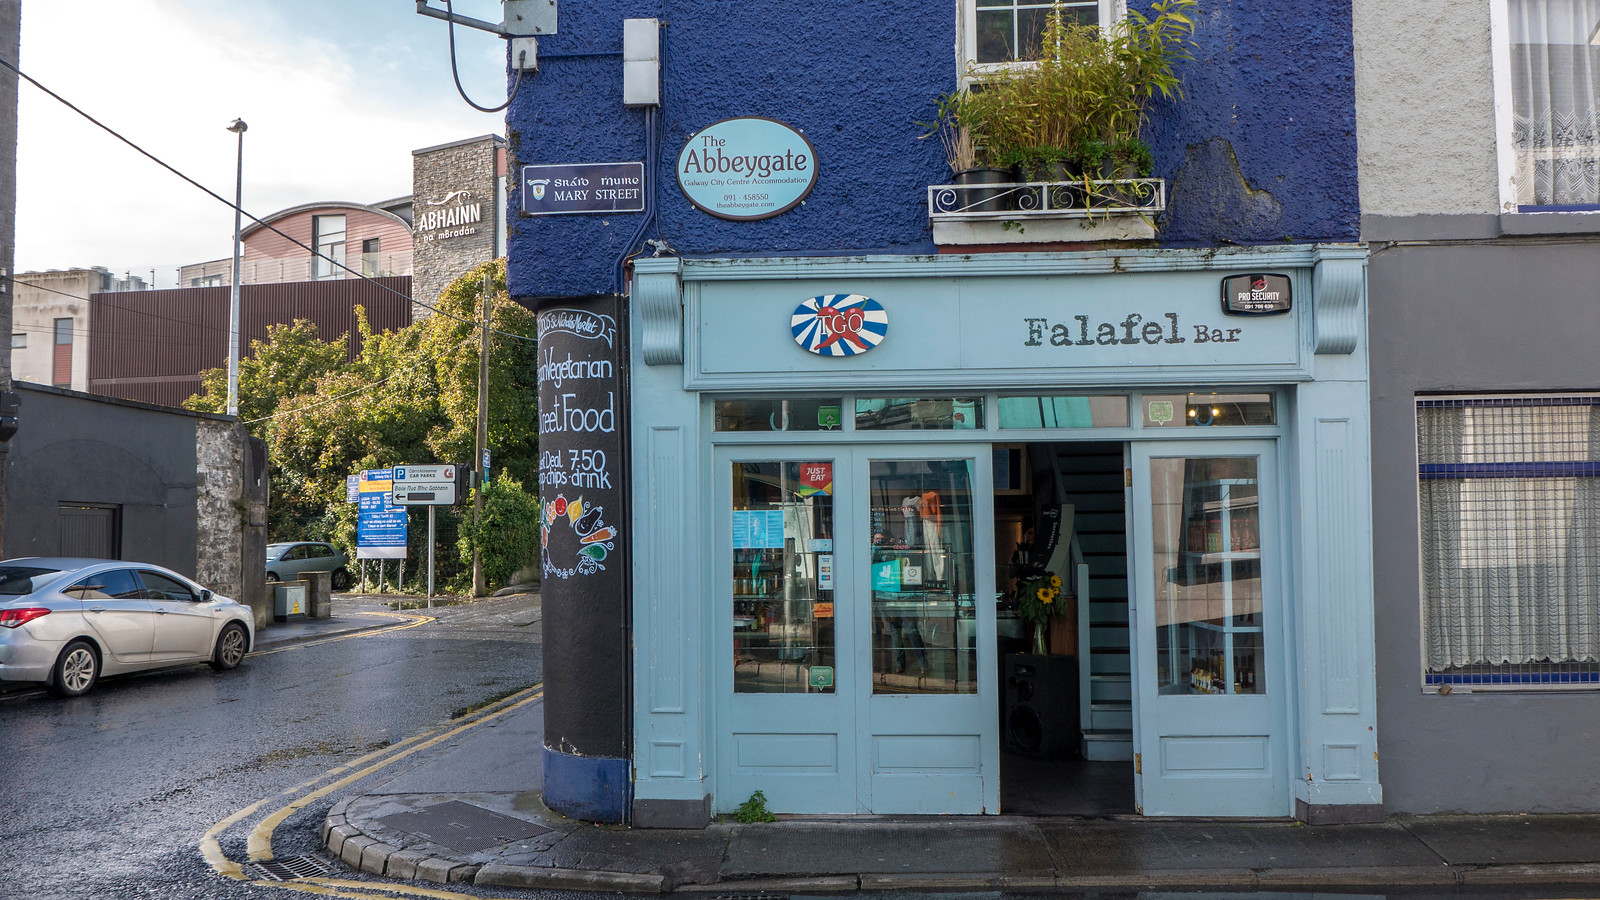 TGO Falafel Bar - Vegan Galway Restaurant and Dining Guide